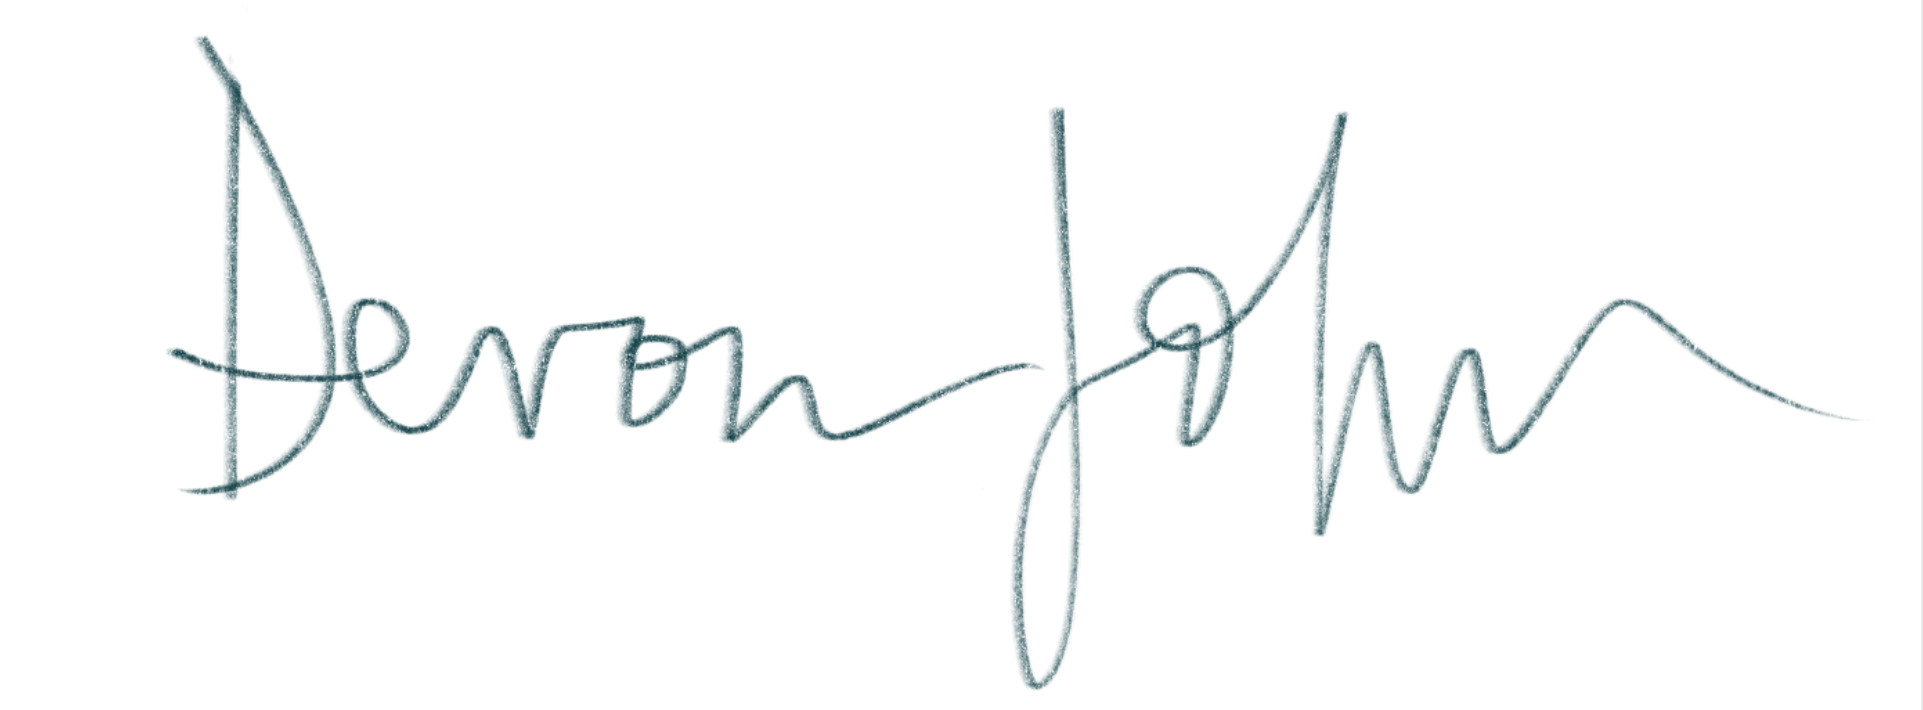 Devon johnson Signature